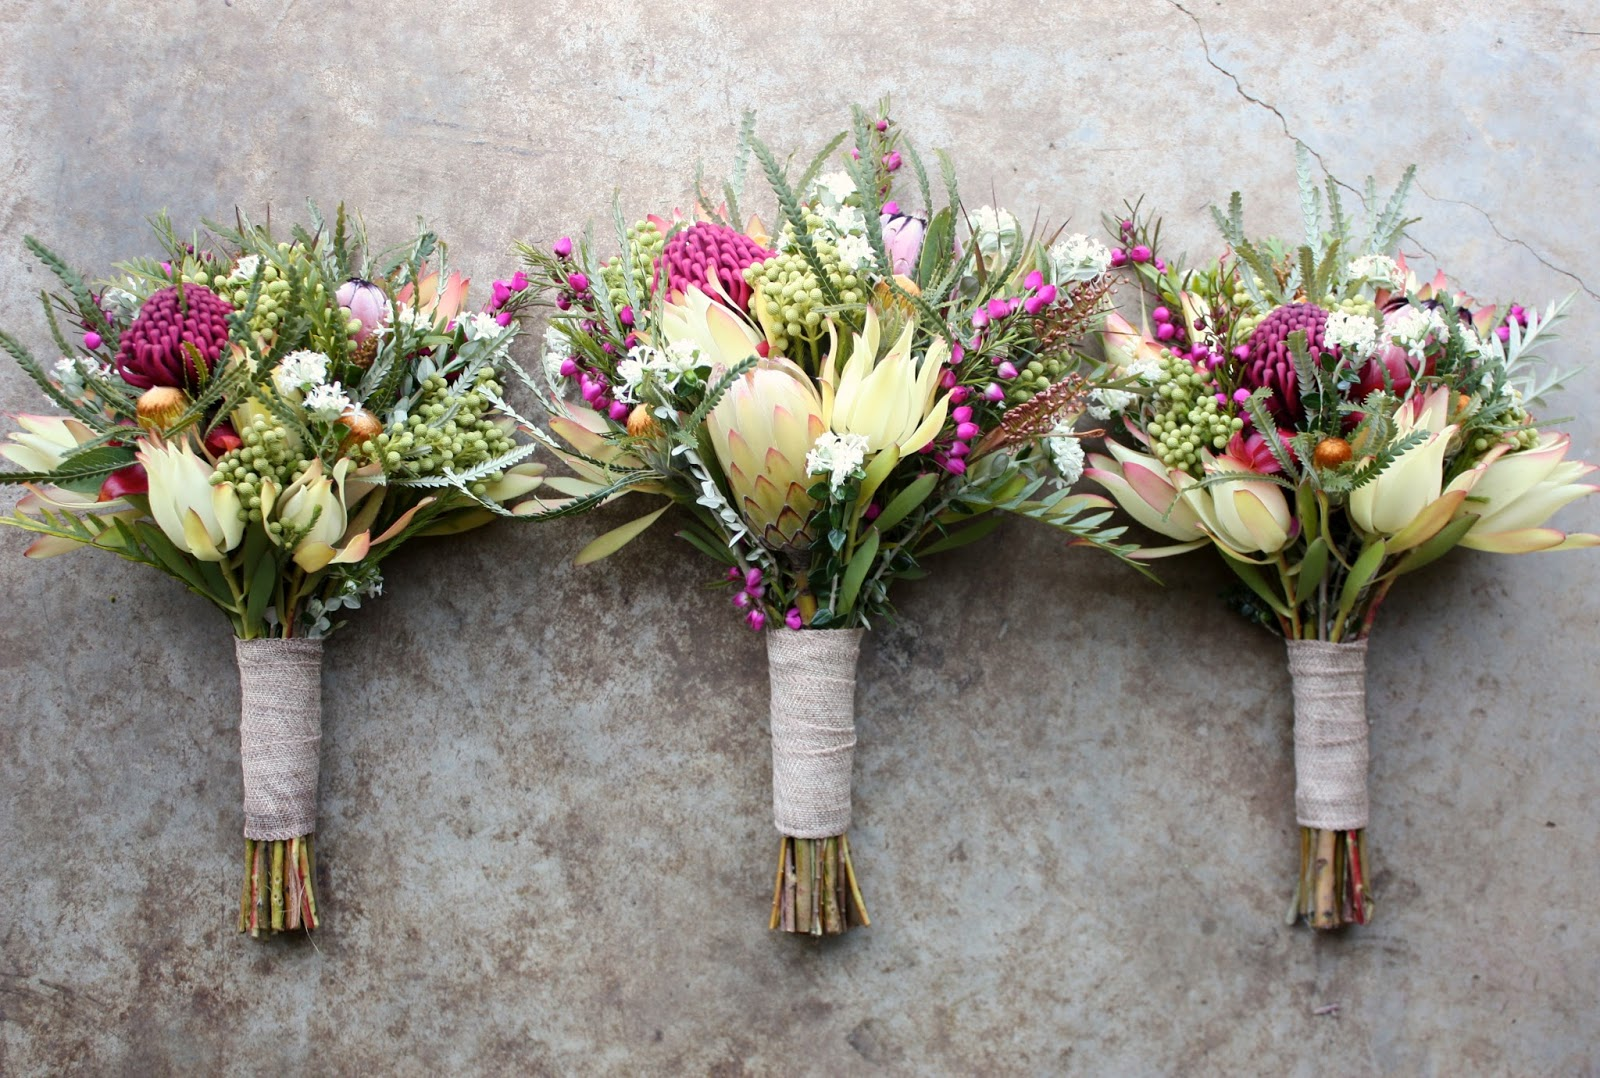 Wedding flowers in season october australia anemone flower season swallows nest farm waratah wedding bouquets mightylinksfo